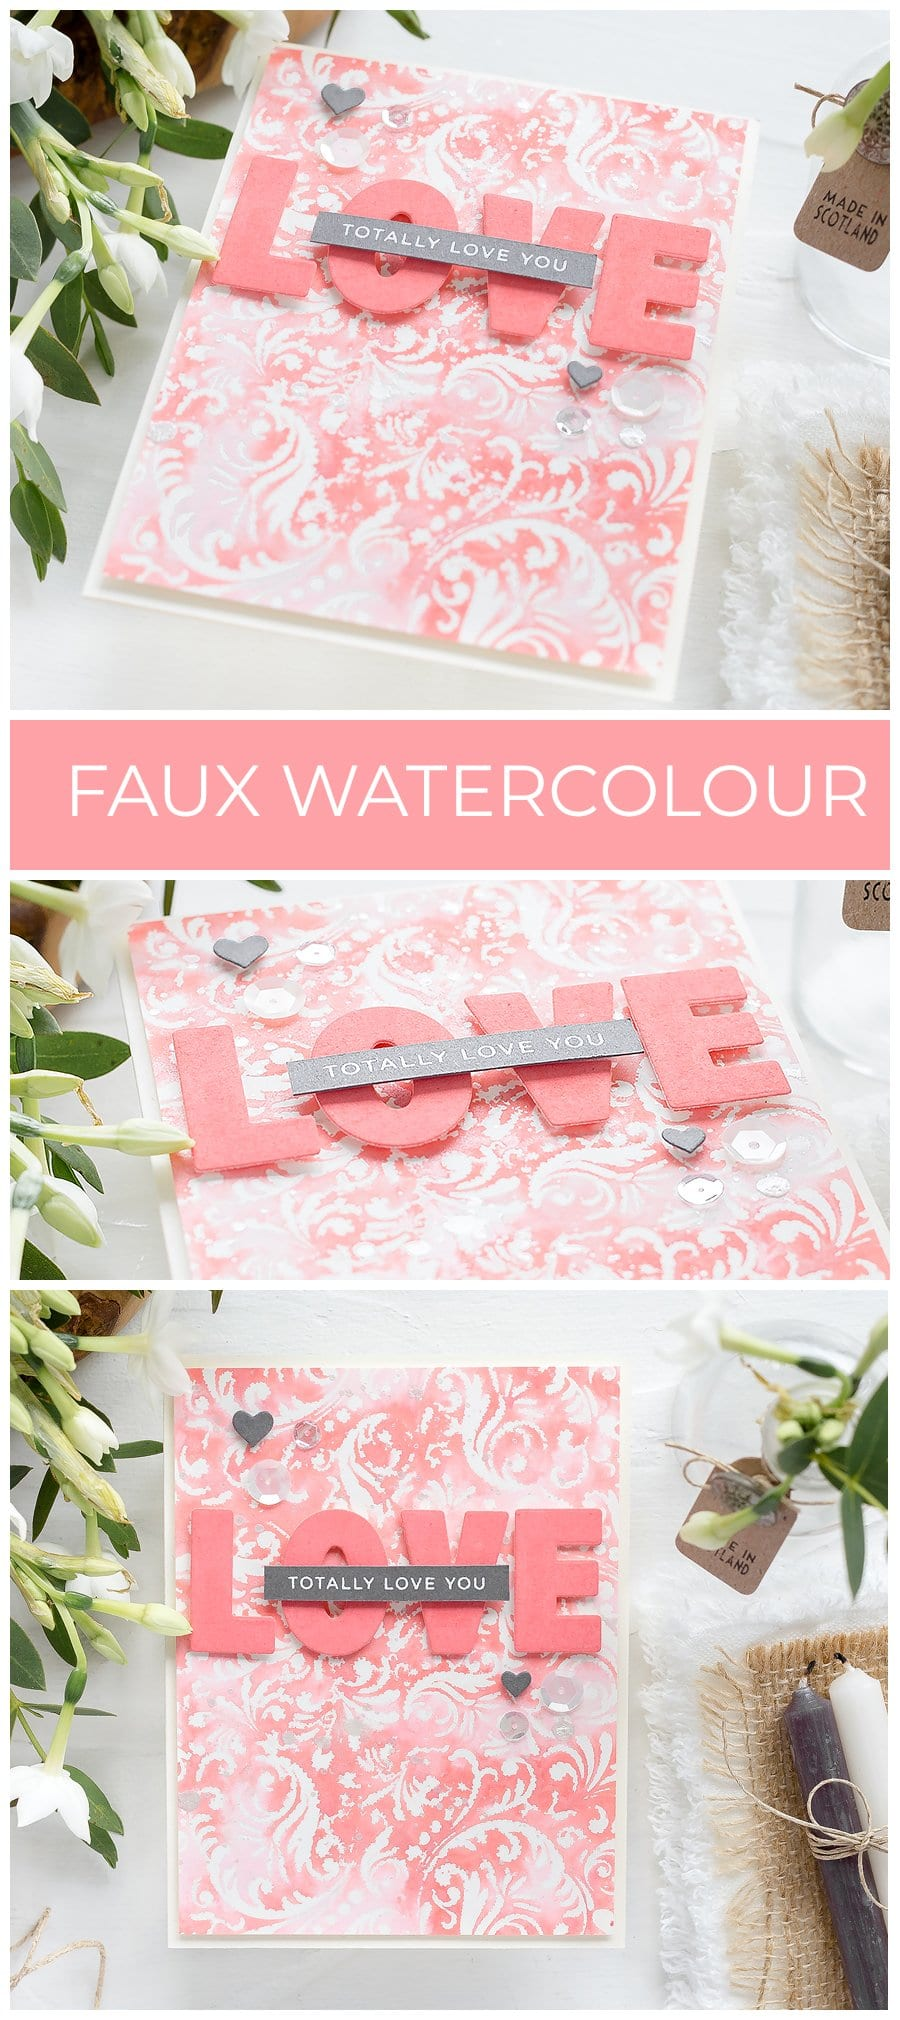 Video tutorial - faux watercolour background Valentine's handmade card by Debby Hughes. Find out more here: https://limedoodledesign.com/2018/12/video-faux-watercolour-background-sss-new-release/